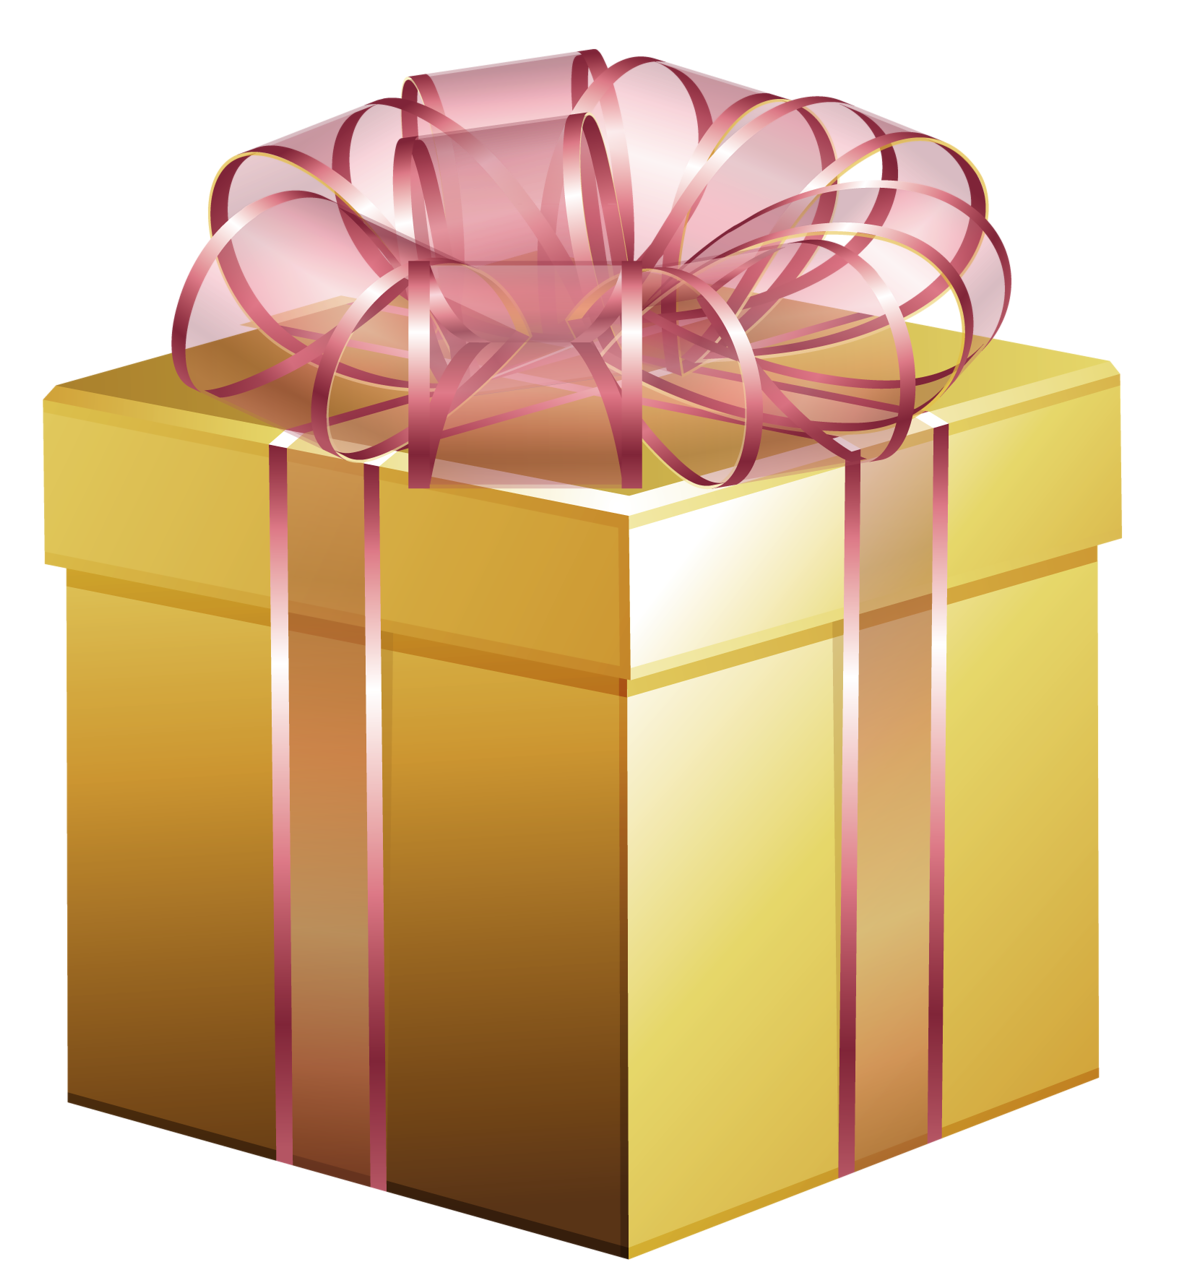 Free Gift Png Transparent Images Download Free Clip Art Free Clip Art On Clipart Library